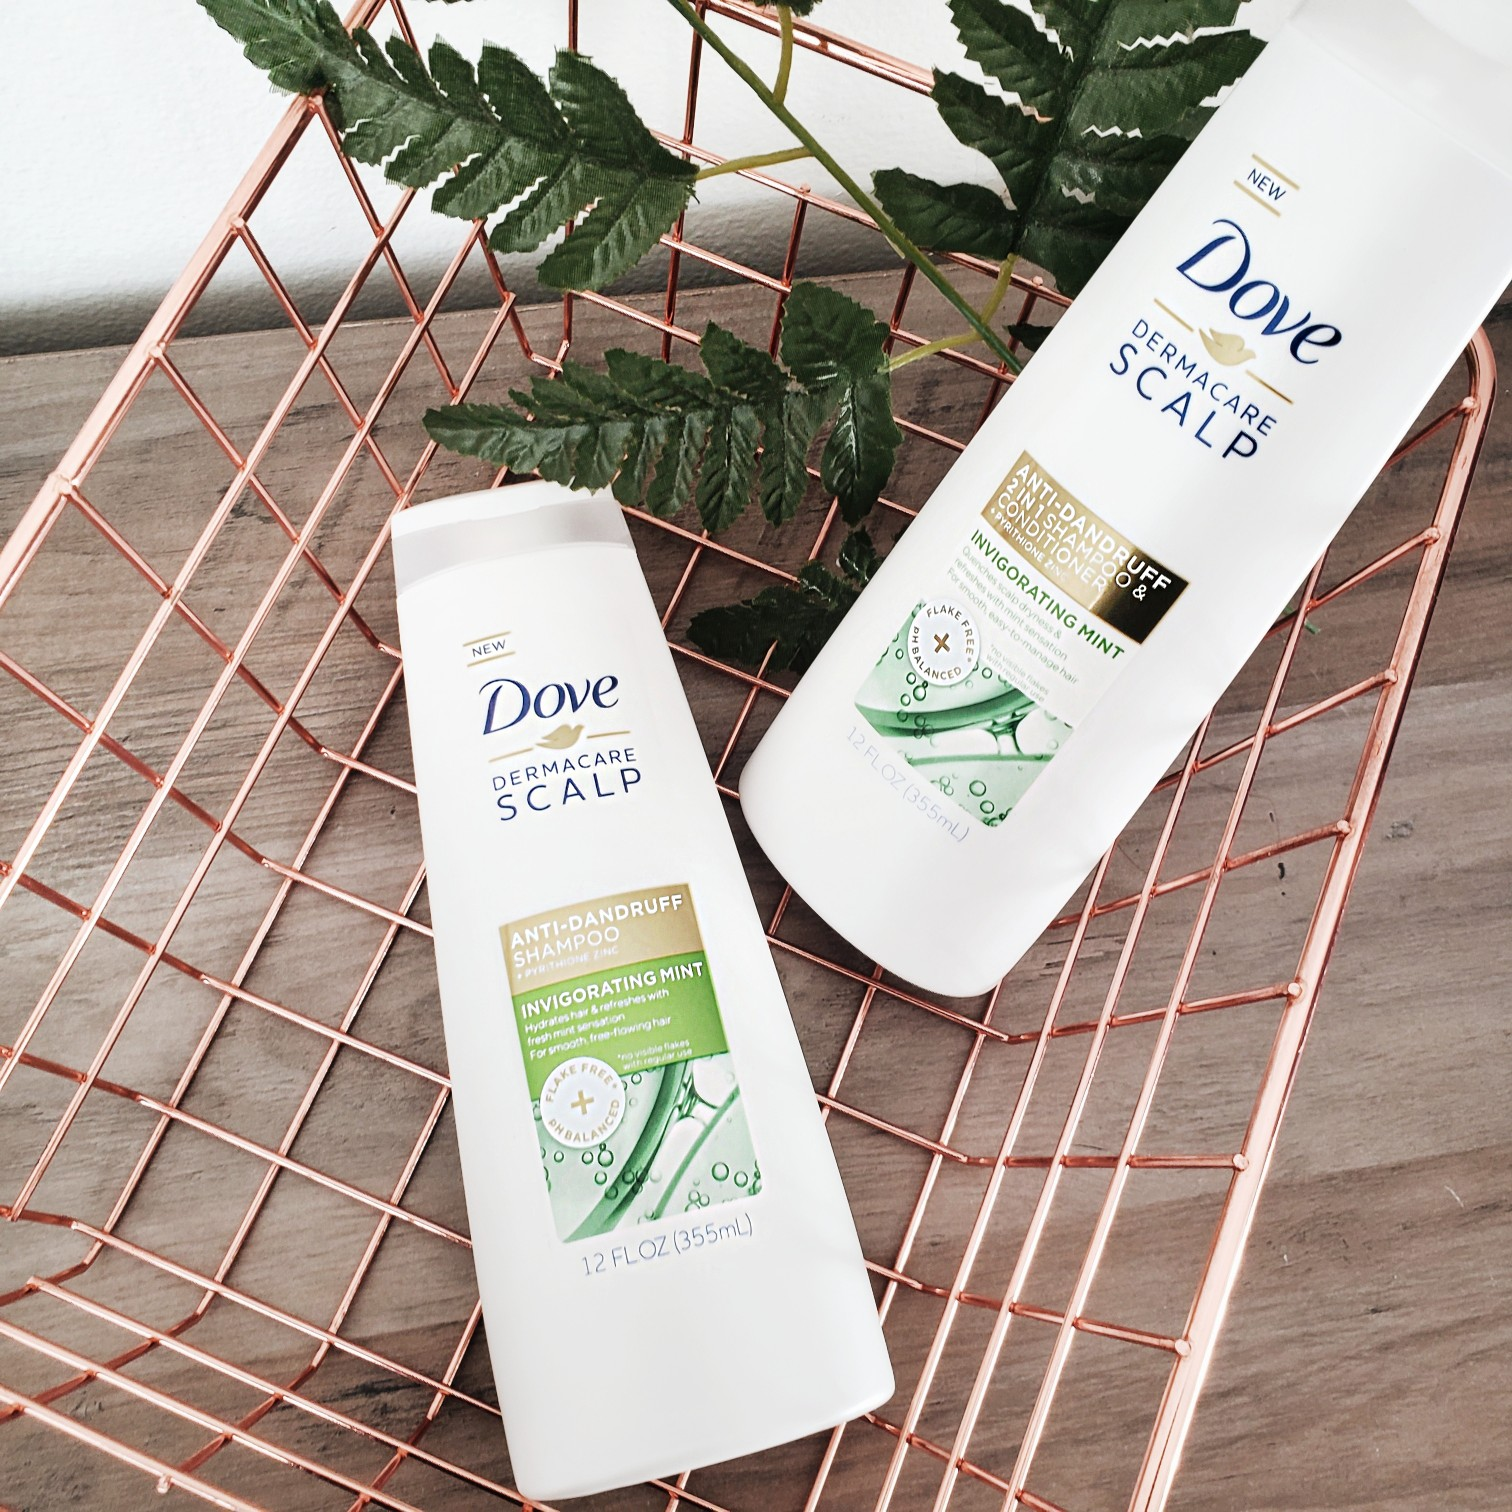 Dove Dermacare Shampoo Review